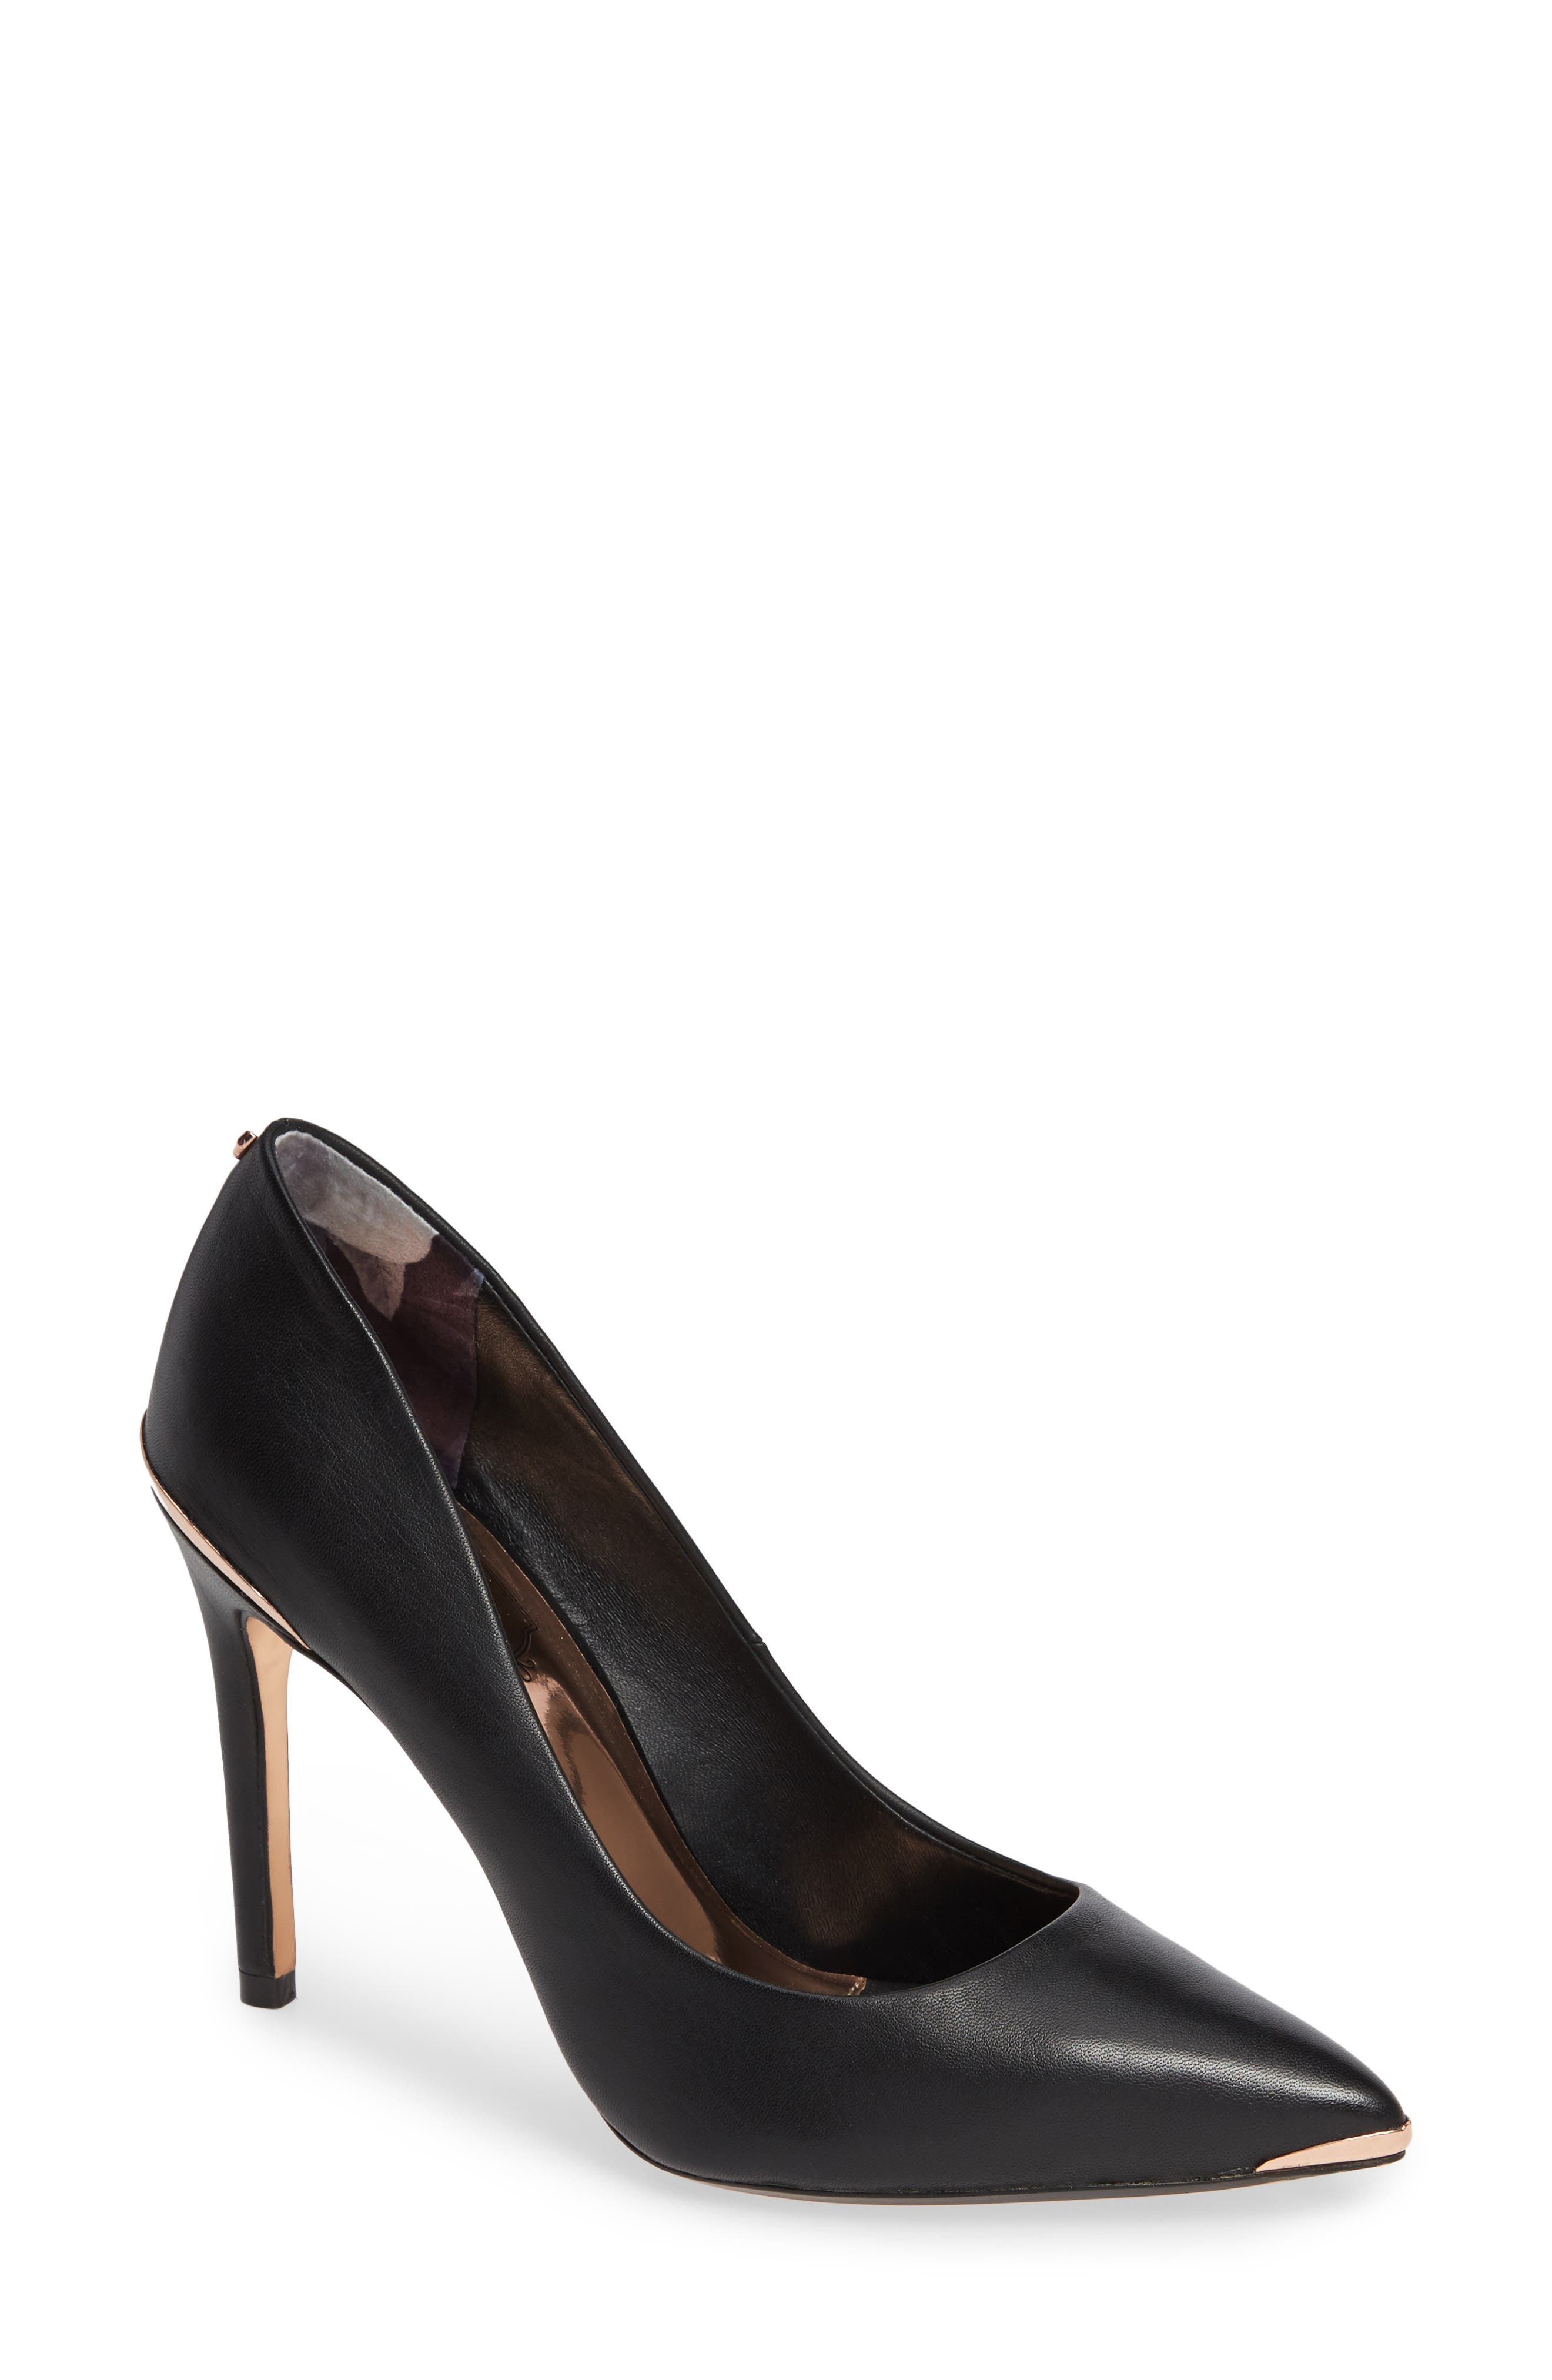 Izibeli Pump,                             Main thumbnail 1, color,                             BLACK LEATHER